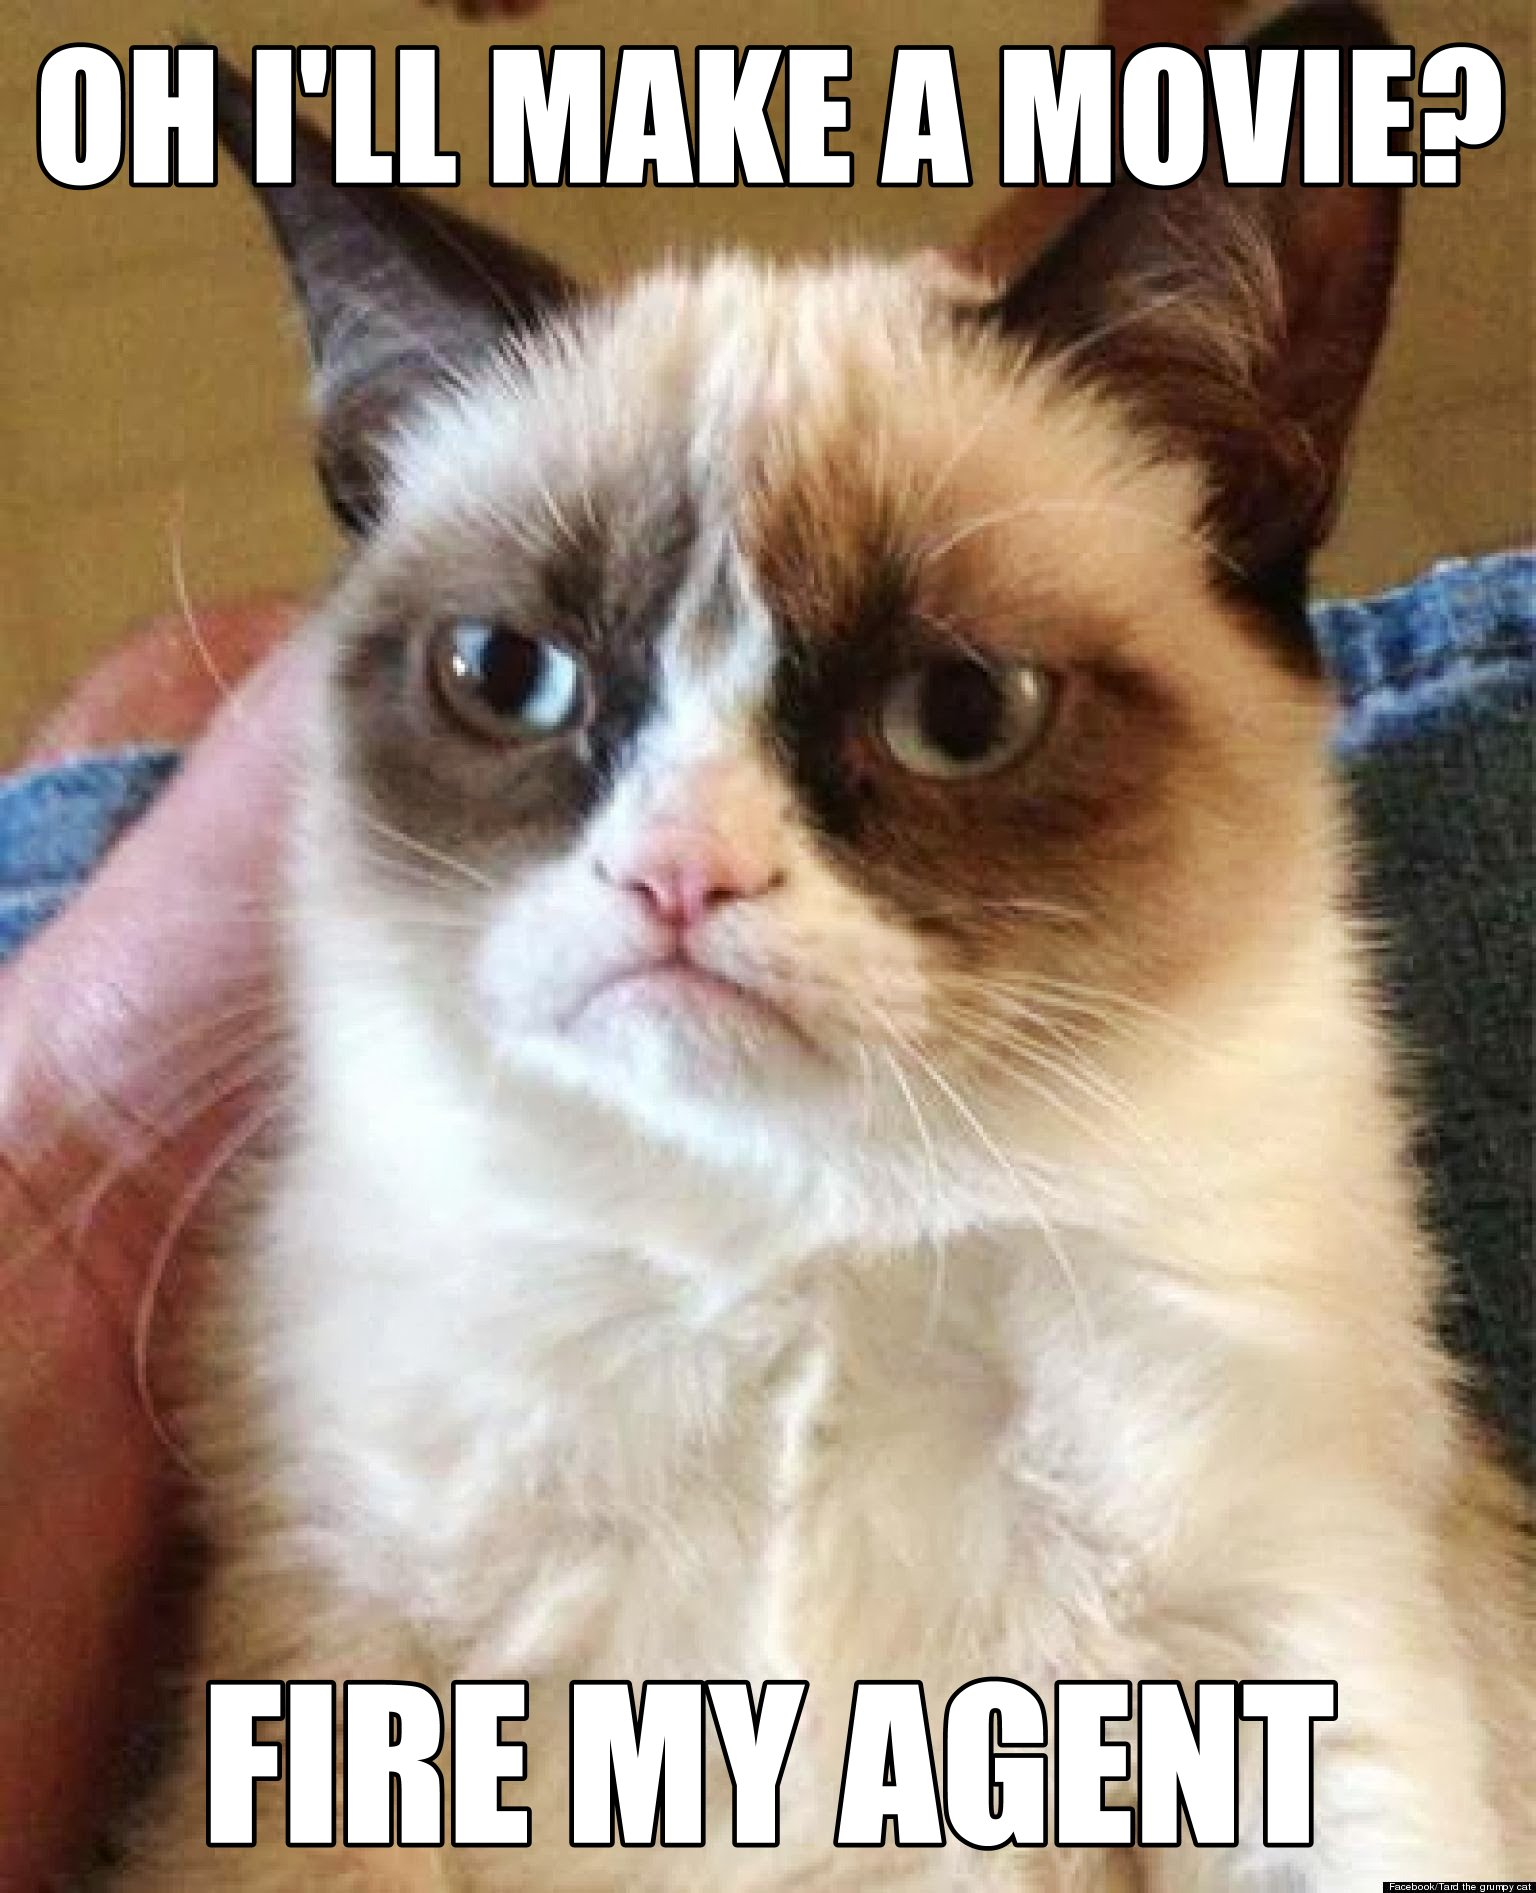 Grumpy cat learns about his movie grumpy cat know your meme ohill make a movie fire my agent facebook tard the grumpy cat altavistaventures Choice Image